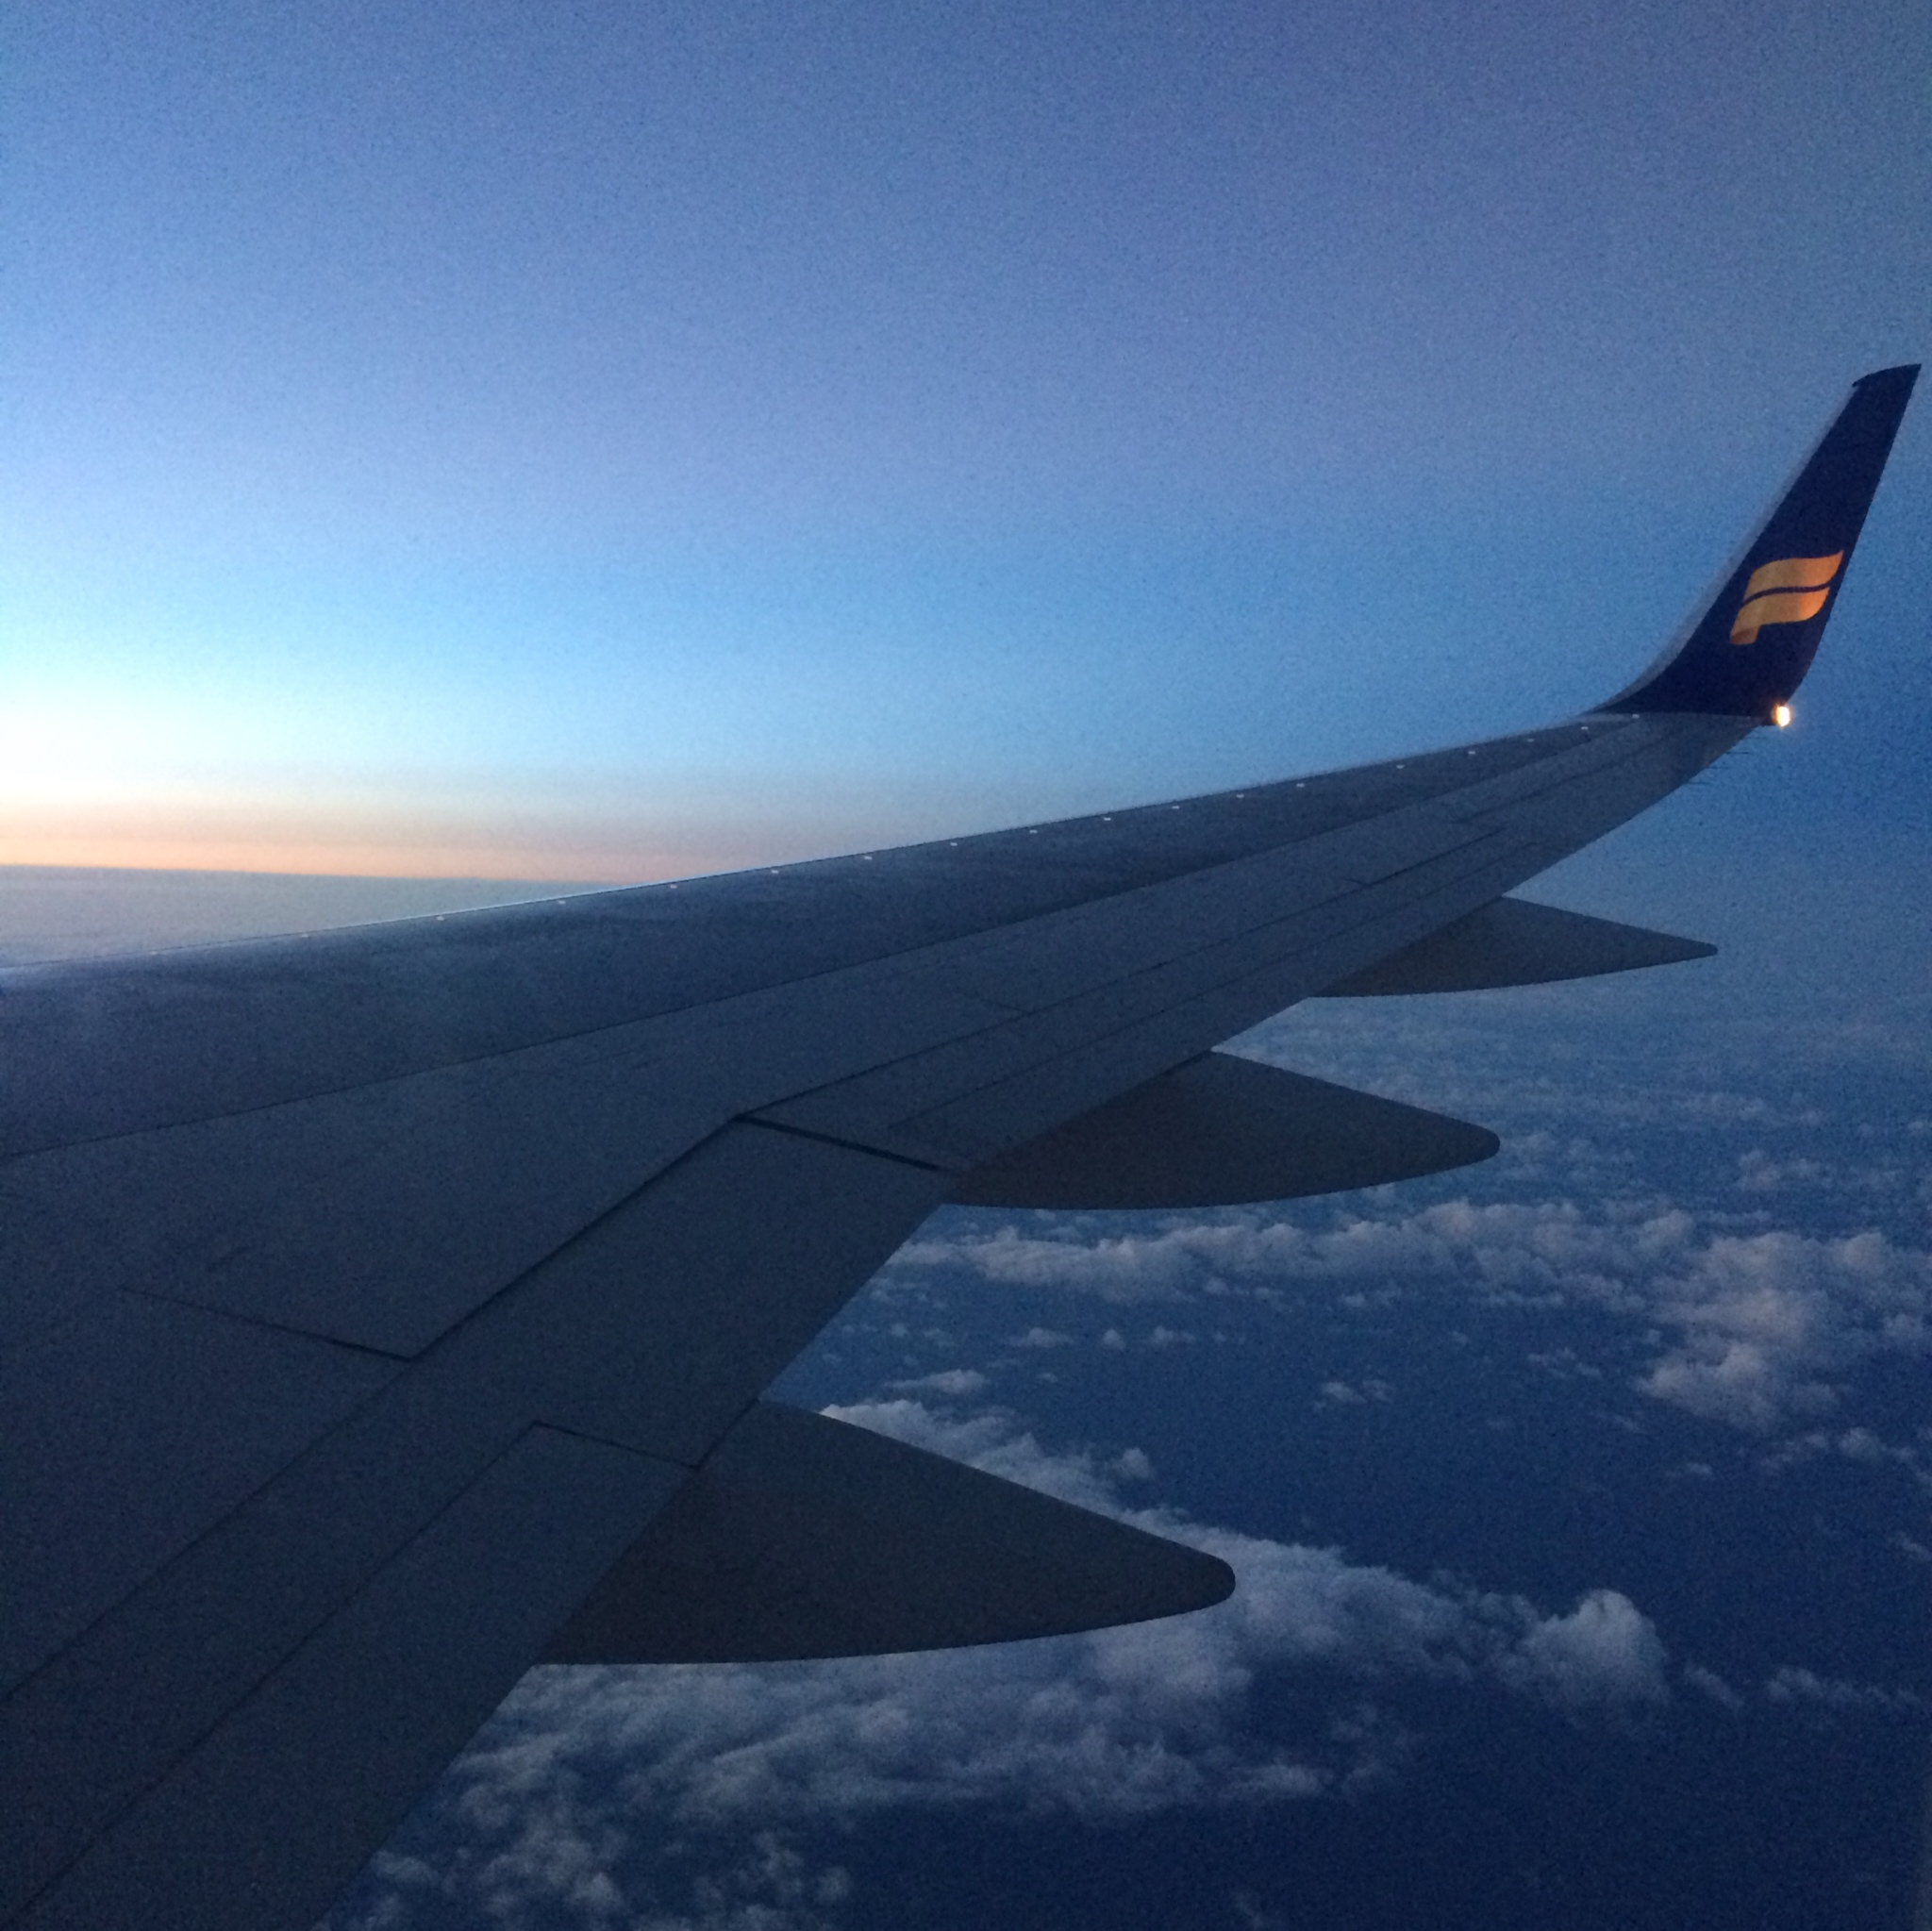 Views From the Flight to Iceland